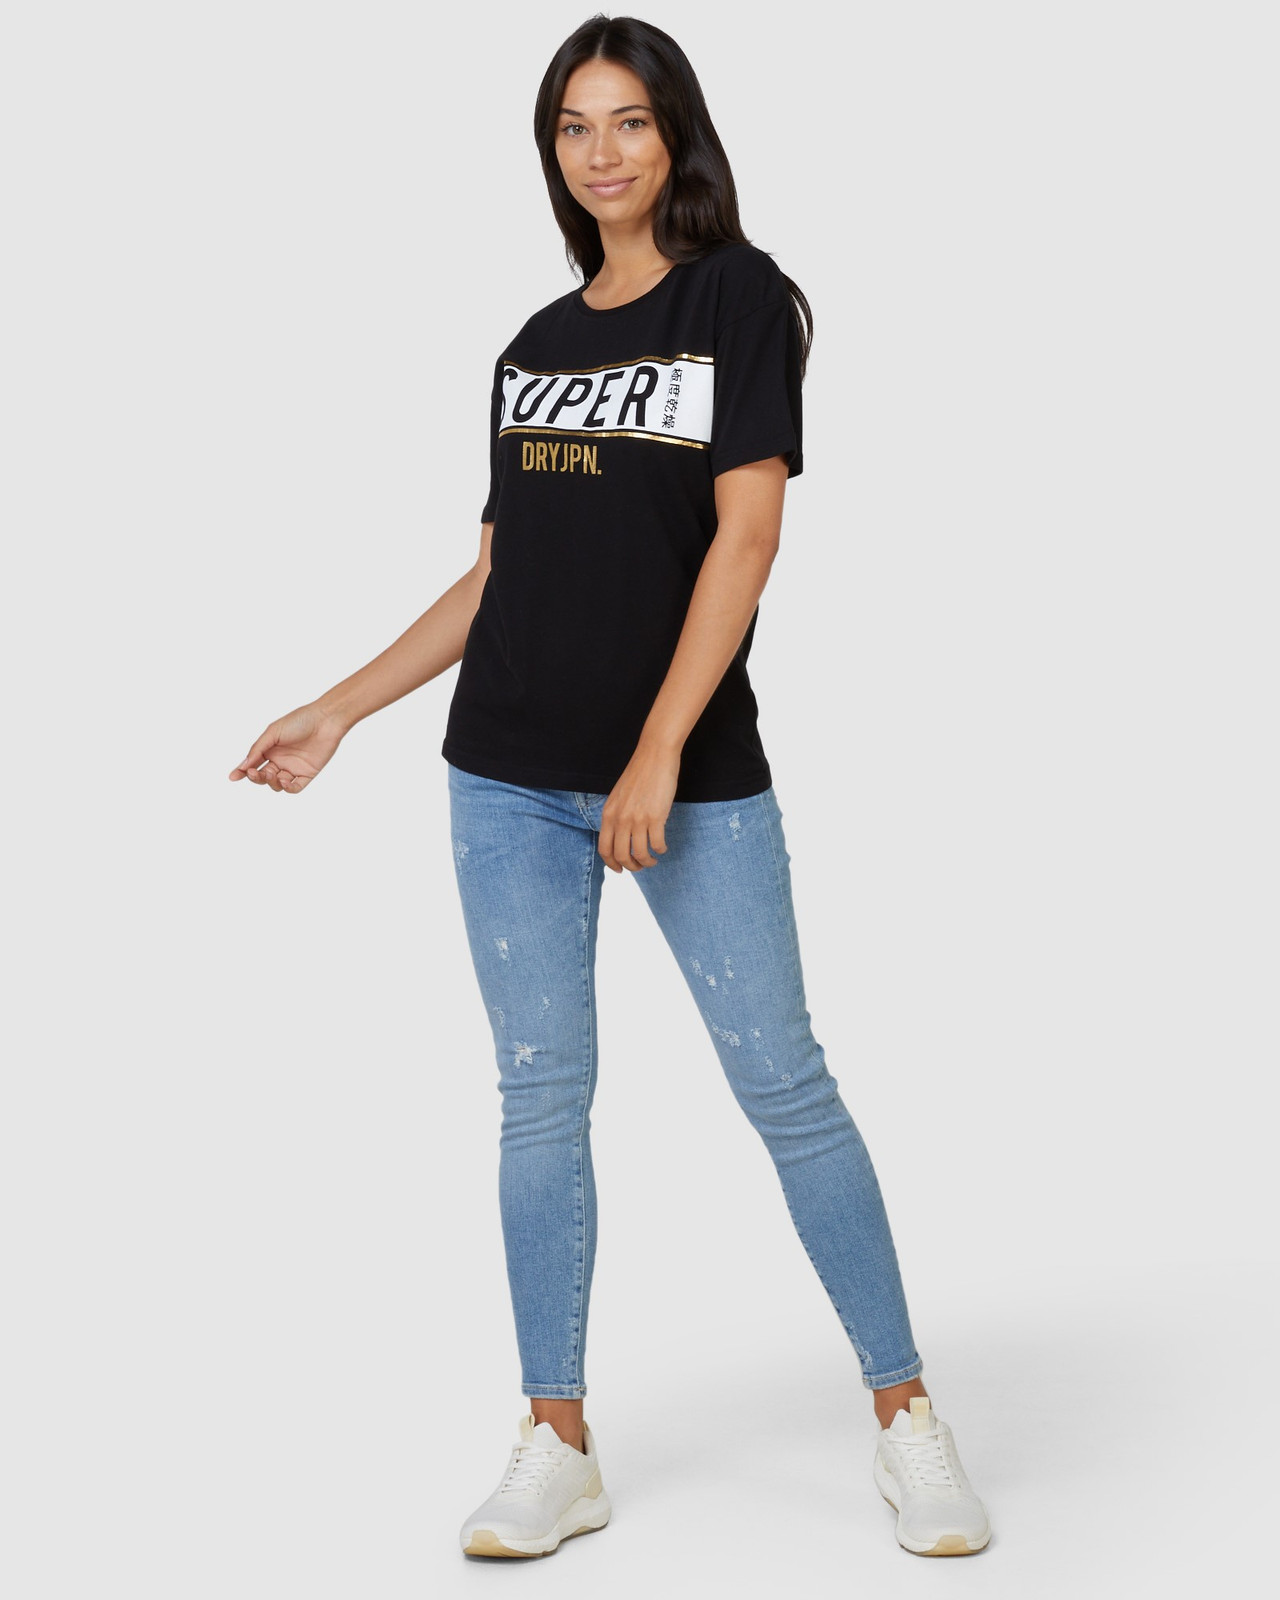 Superdry Womens Sdry Panel Tee Black Printed T Shirts 1